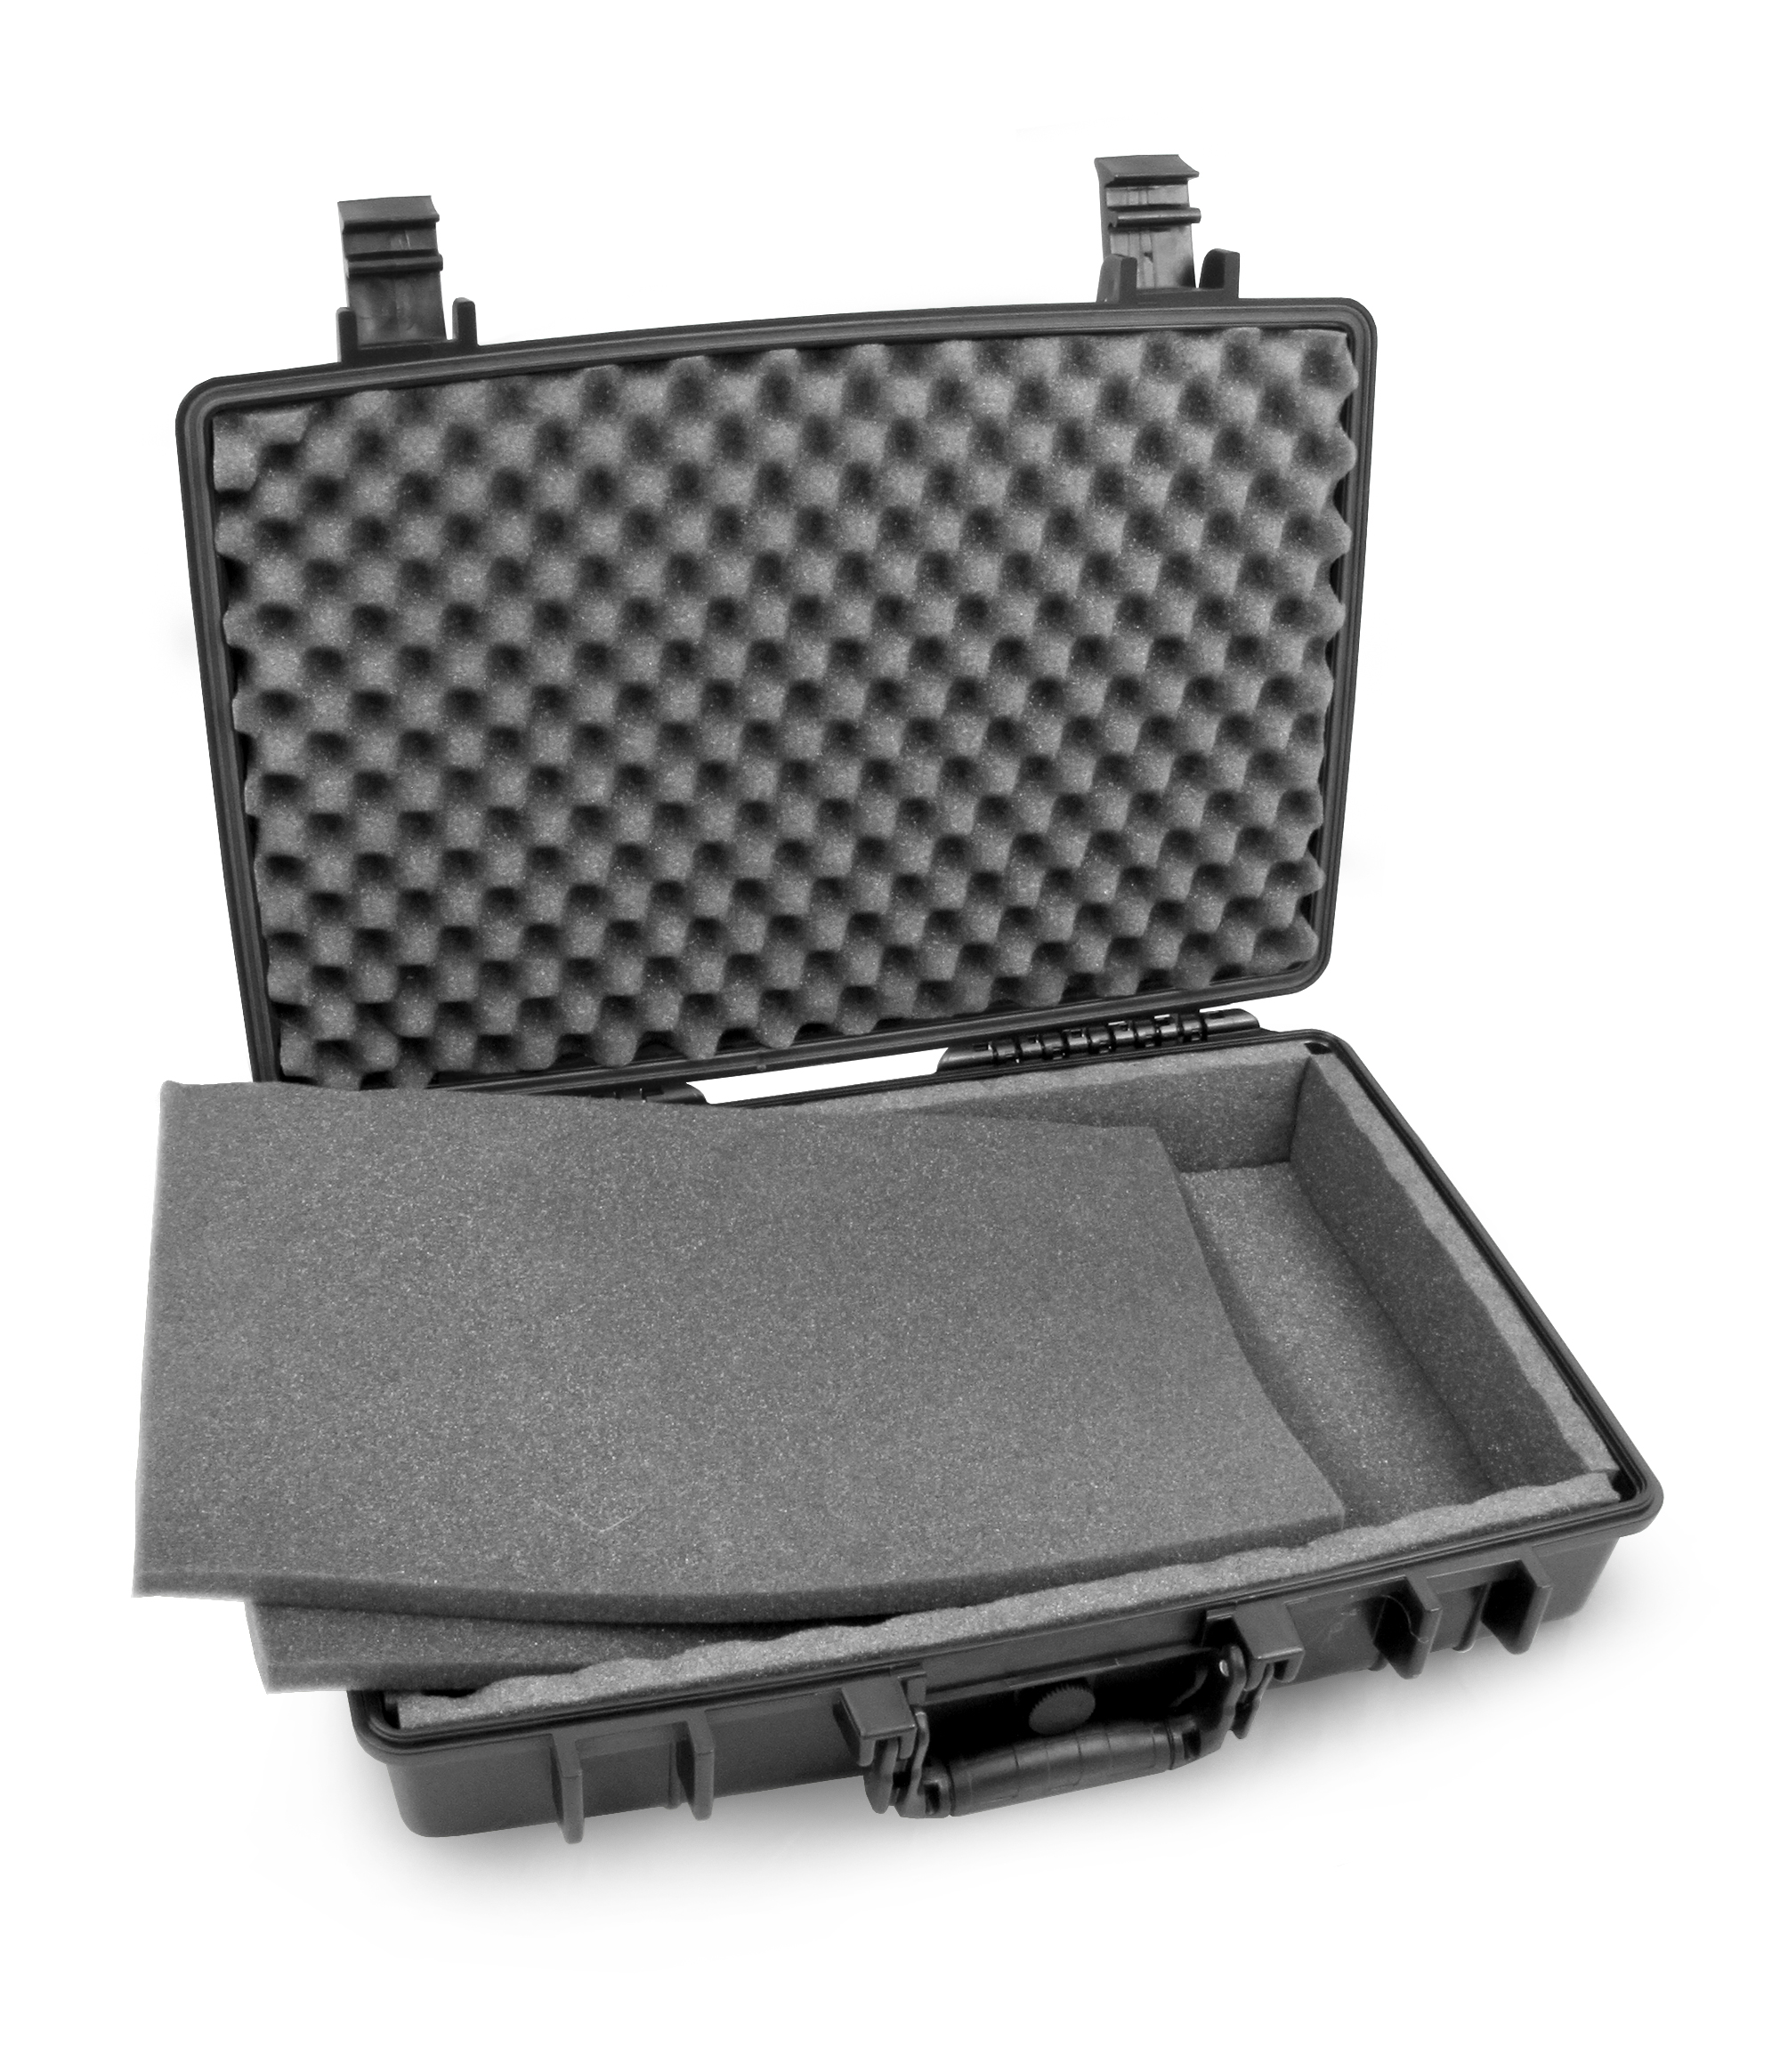 Hard Laptop Case Fits Msi Gs65 Stealth